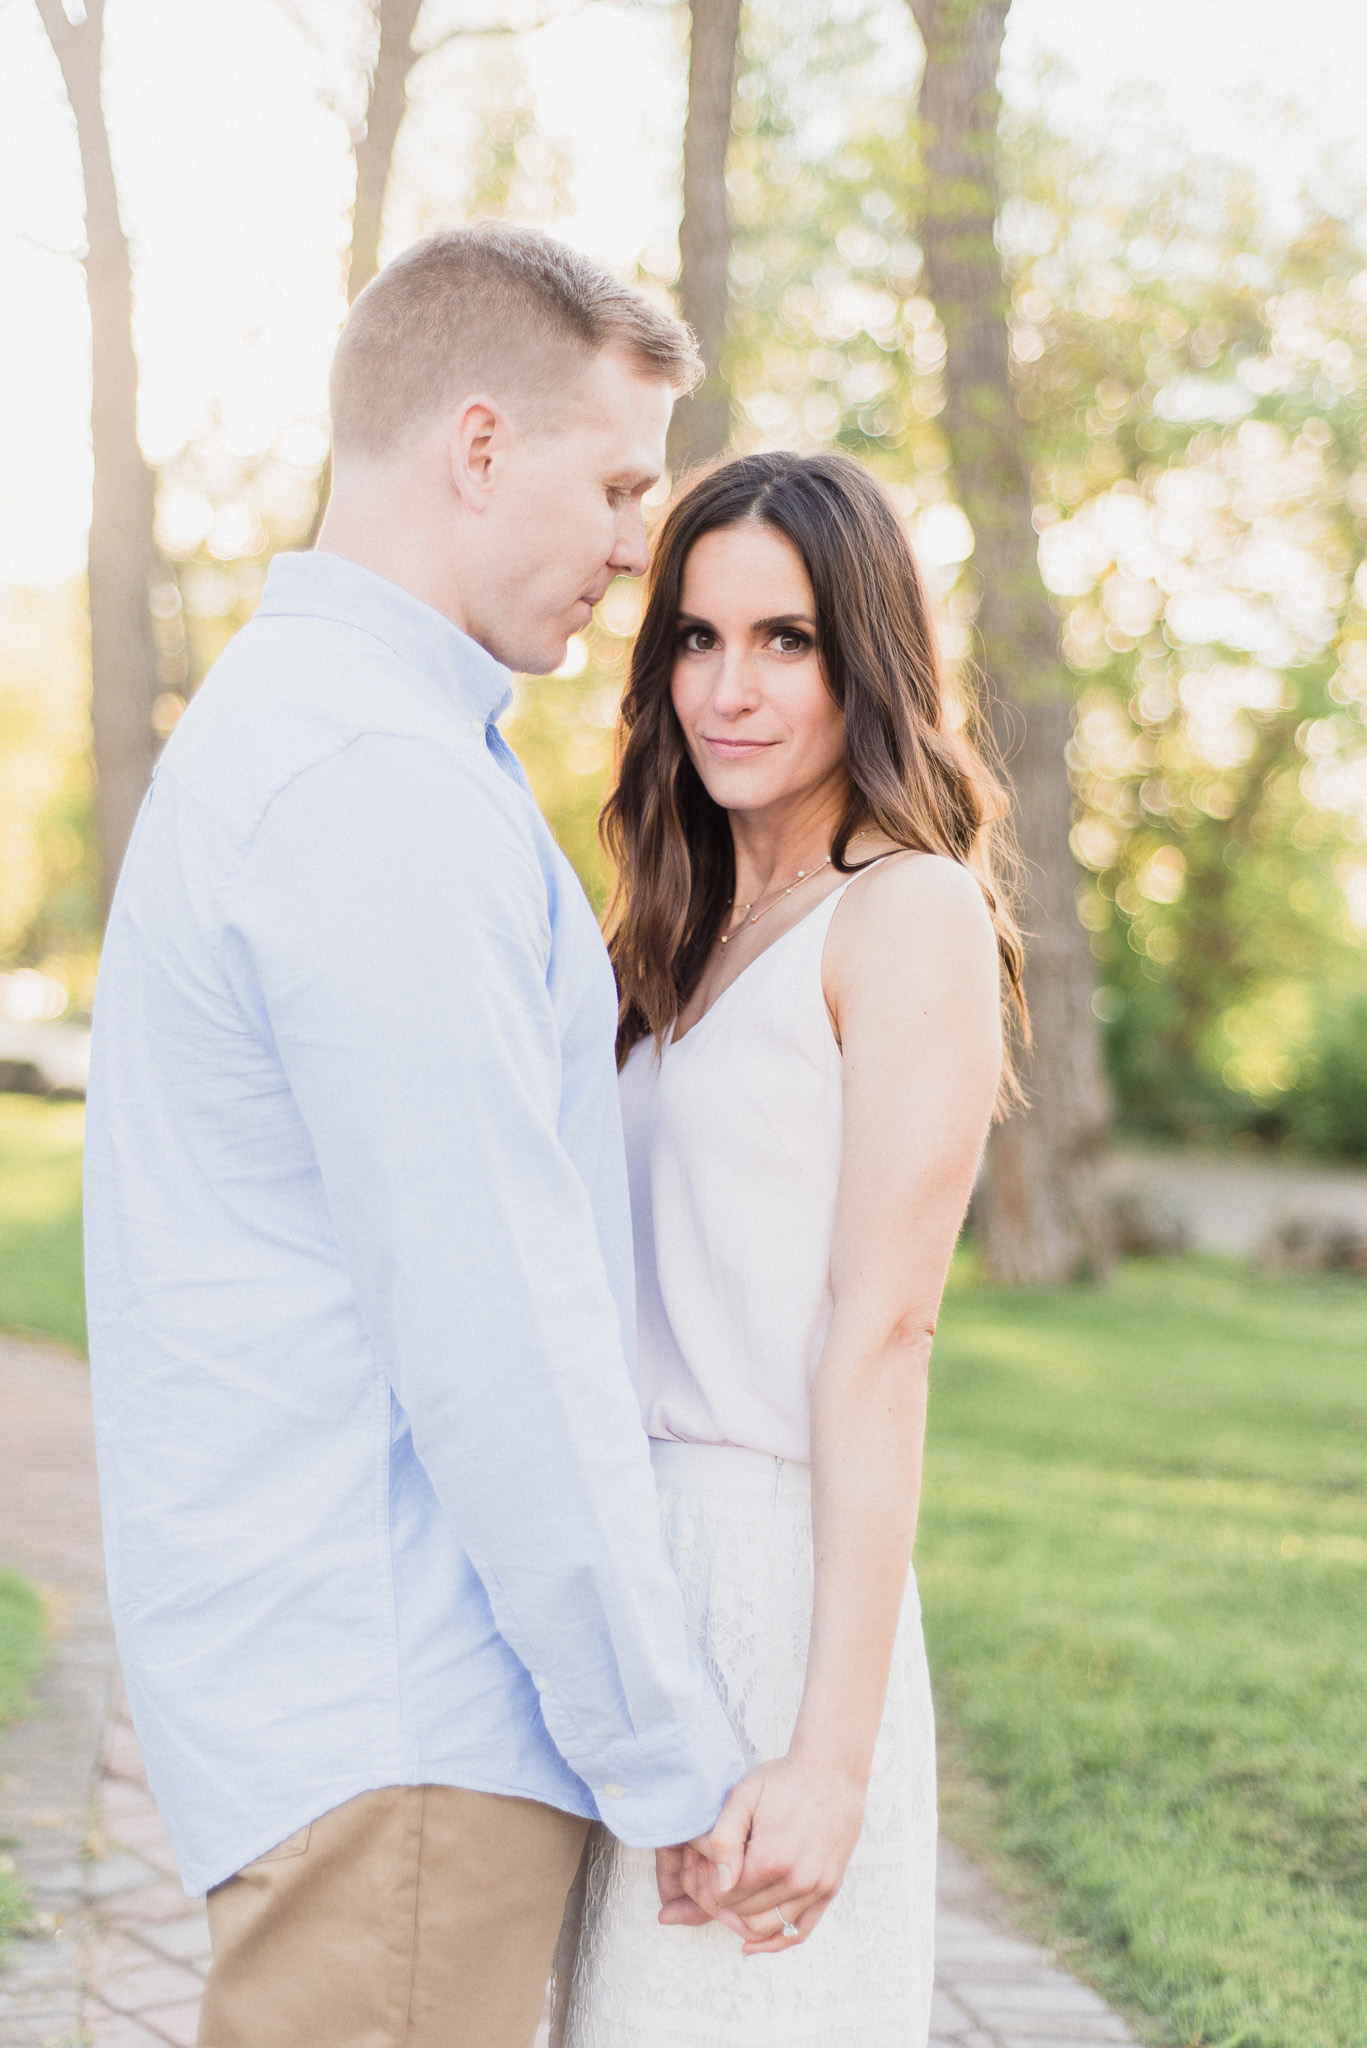 Sunny summertime engagement session by Jenn Kavanagh Photography